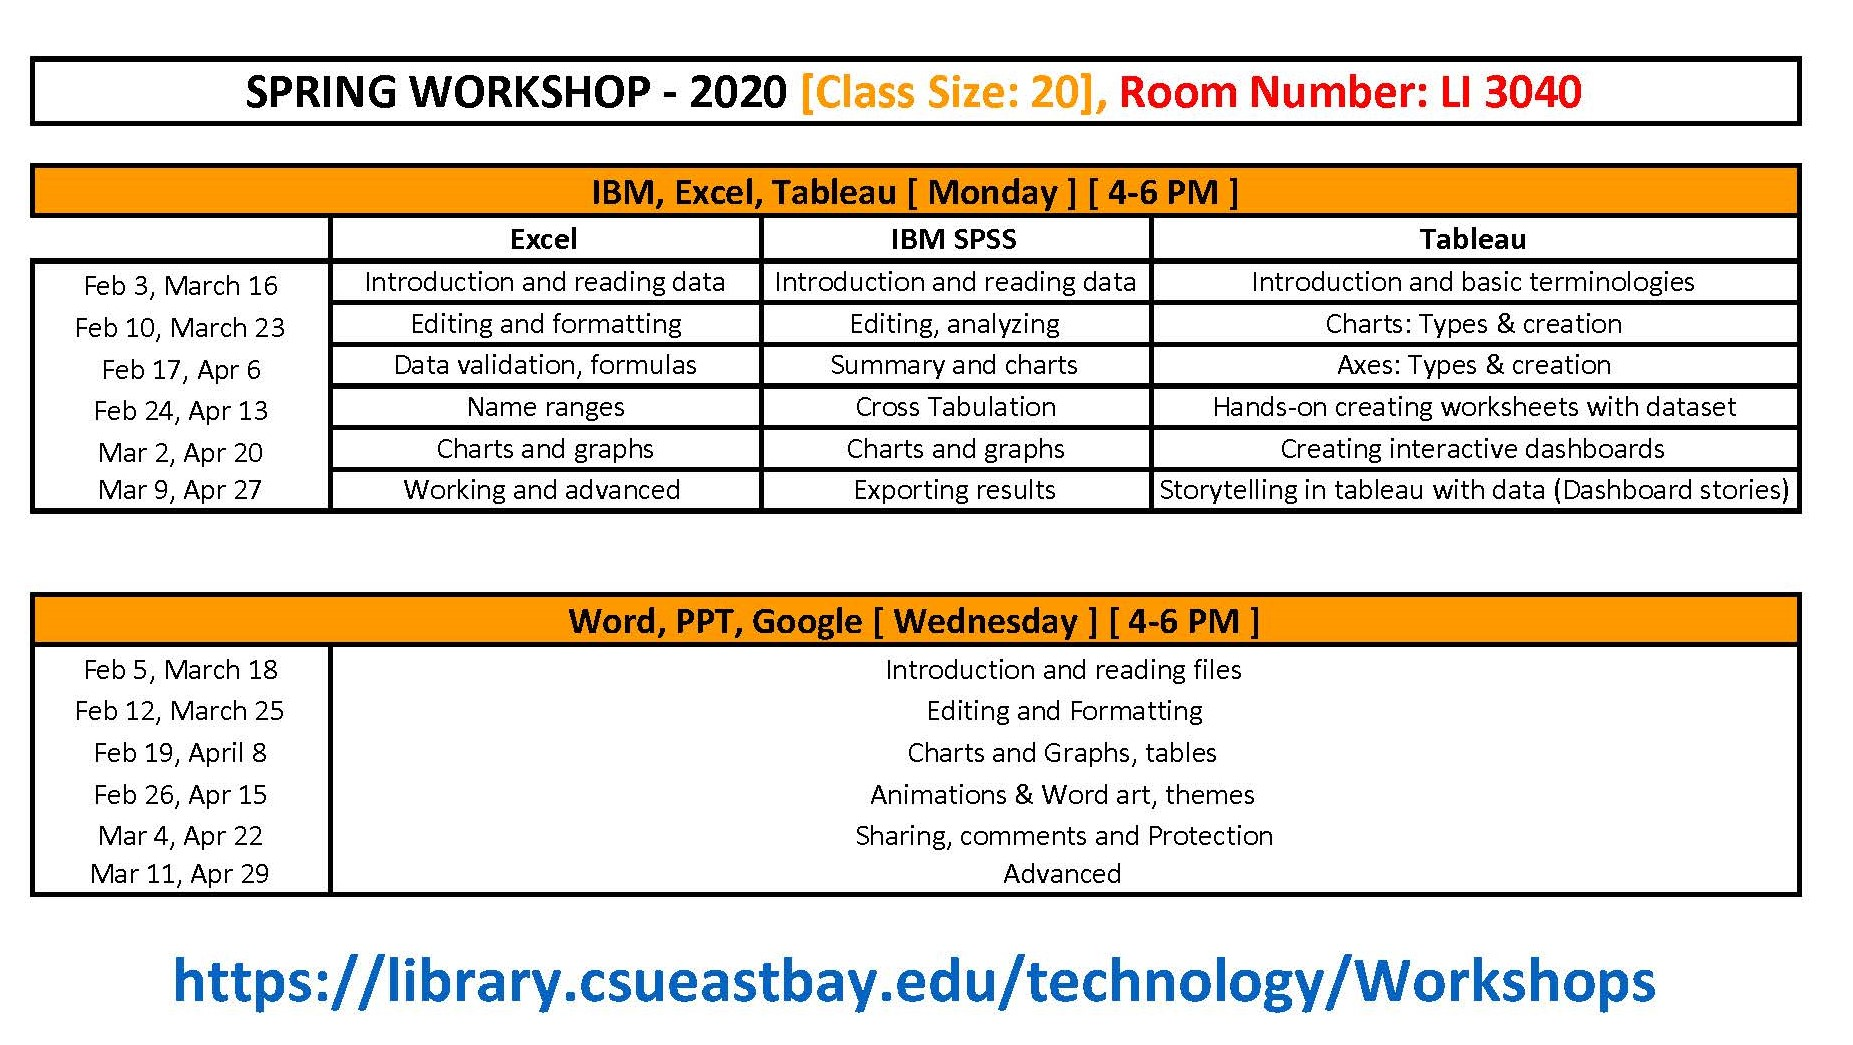 Full Workshop Schedule